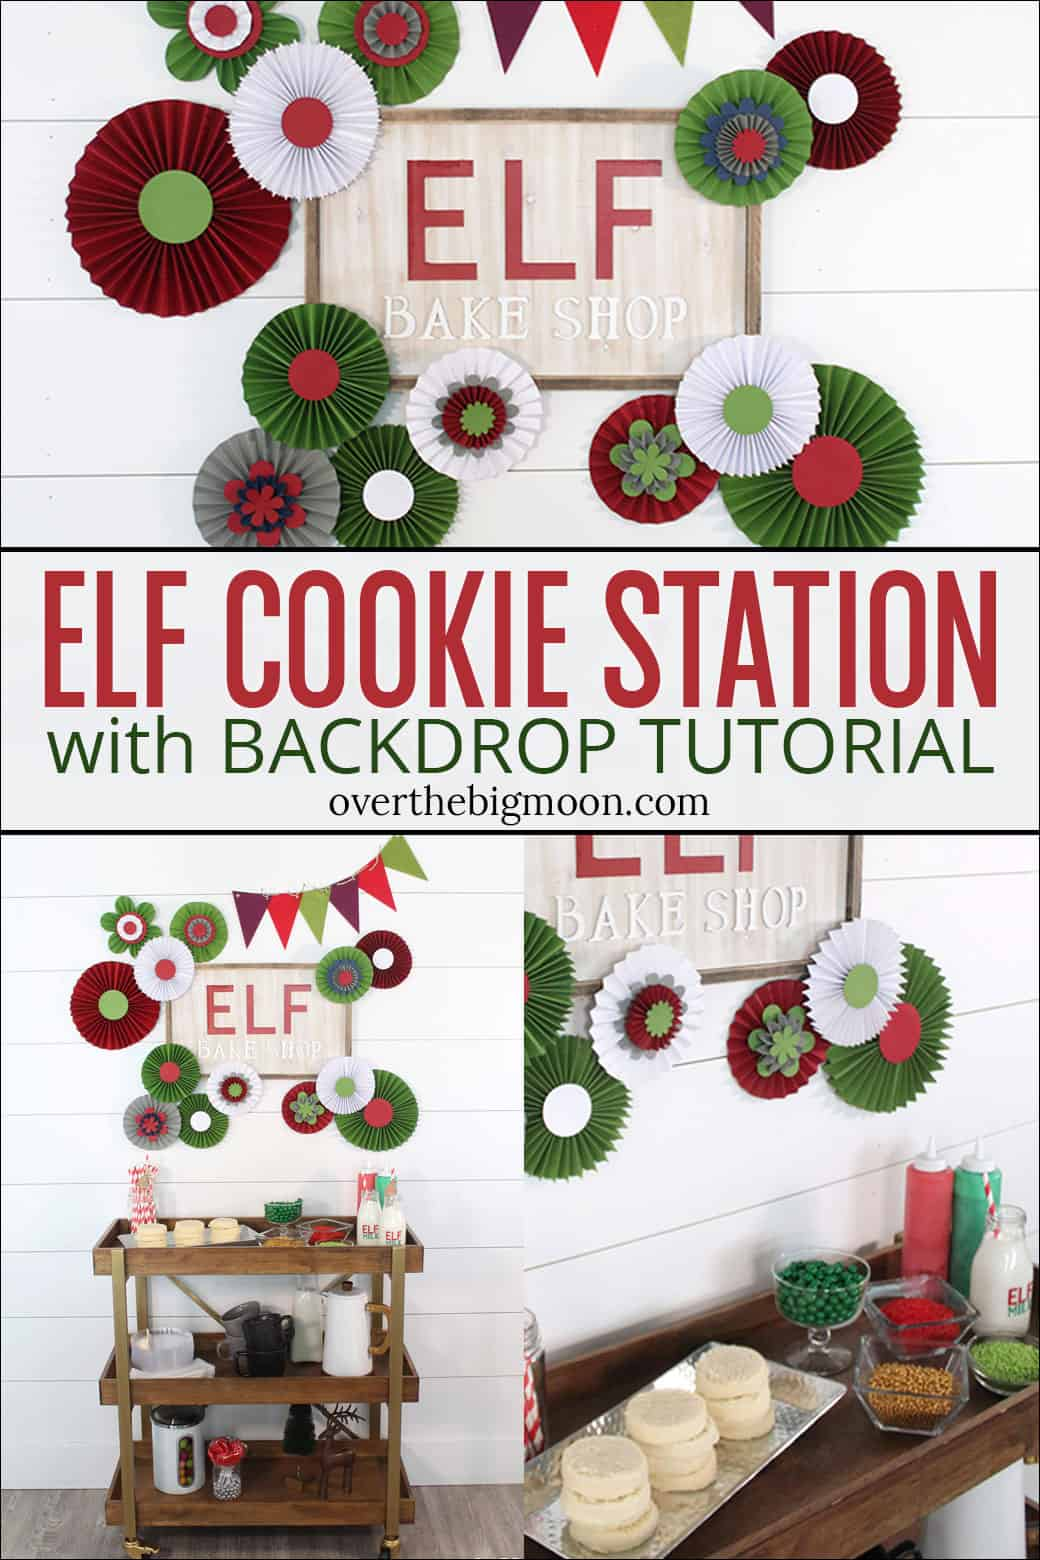 DIY Elf Cookie Station - detailed tutorial on rosette and sign backdrop! From overthebigmoon.com!